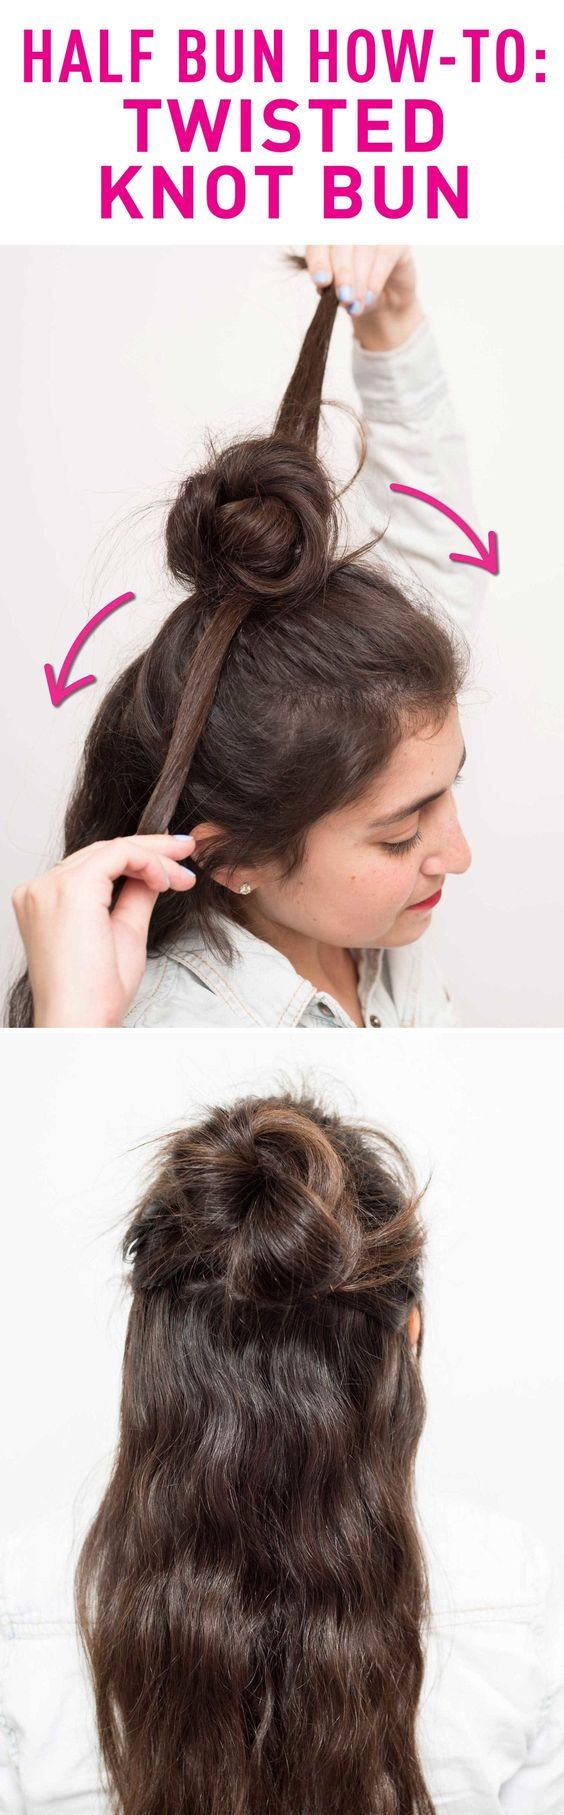 Top twisted knot bun over